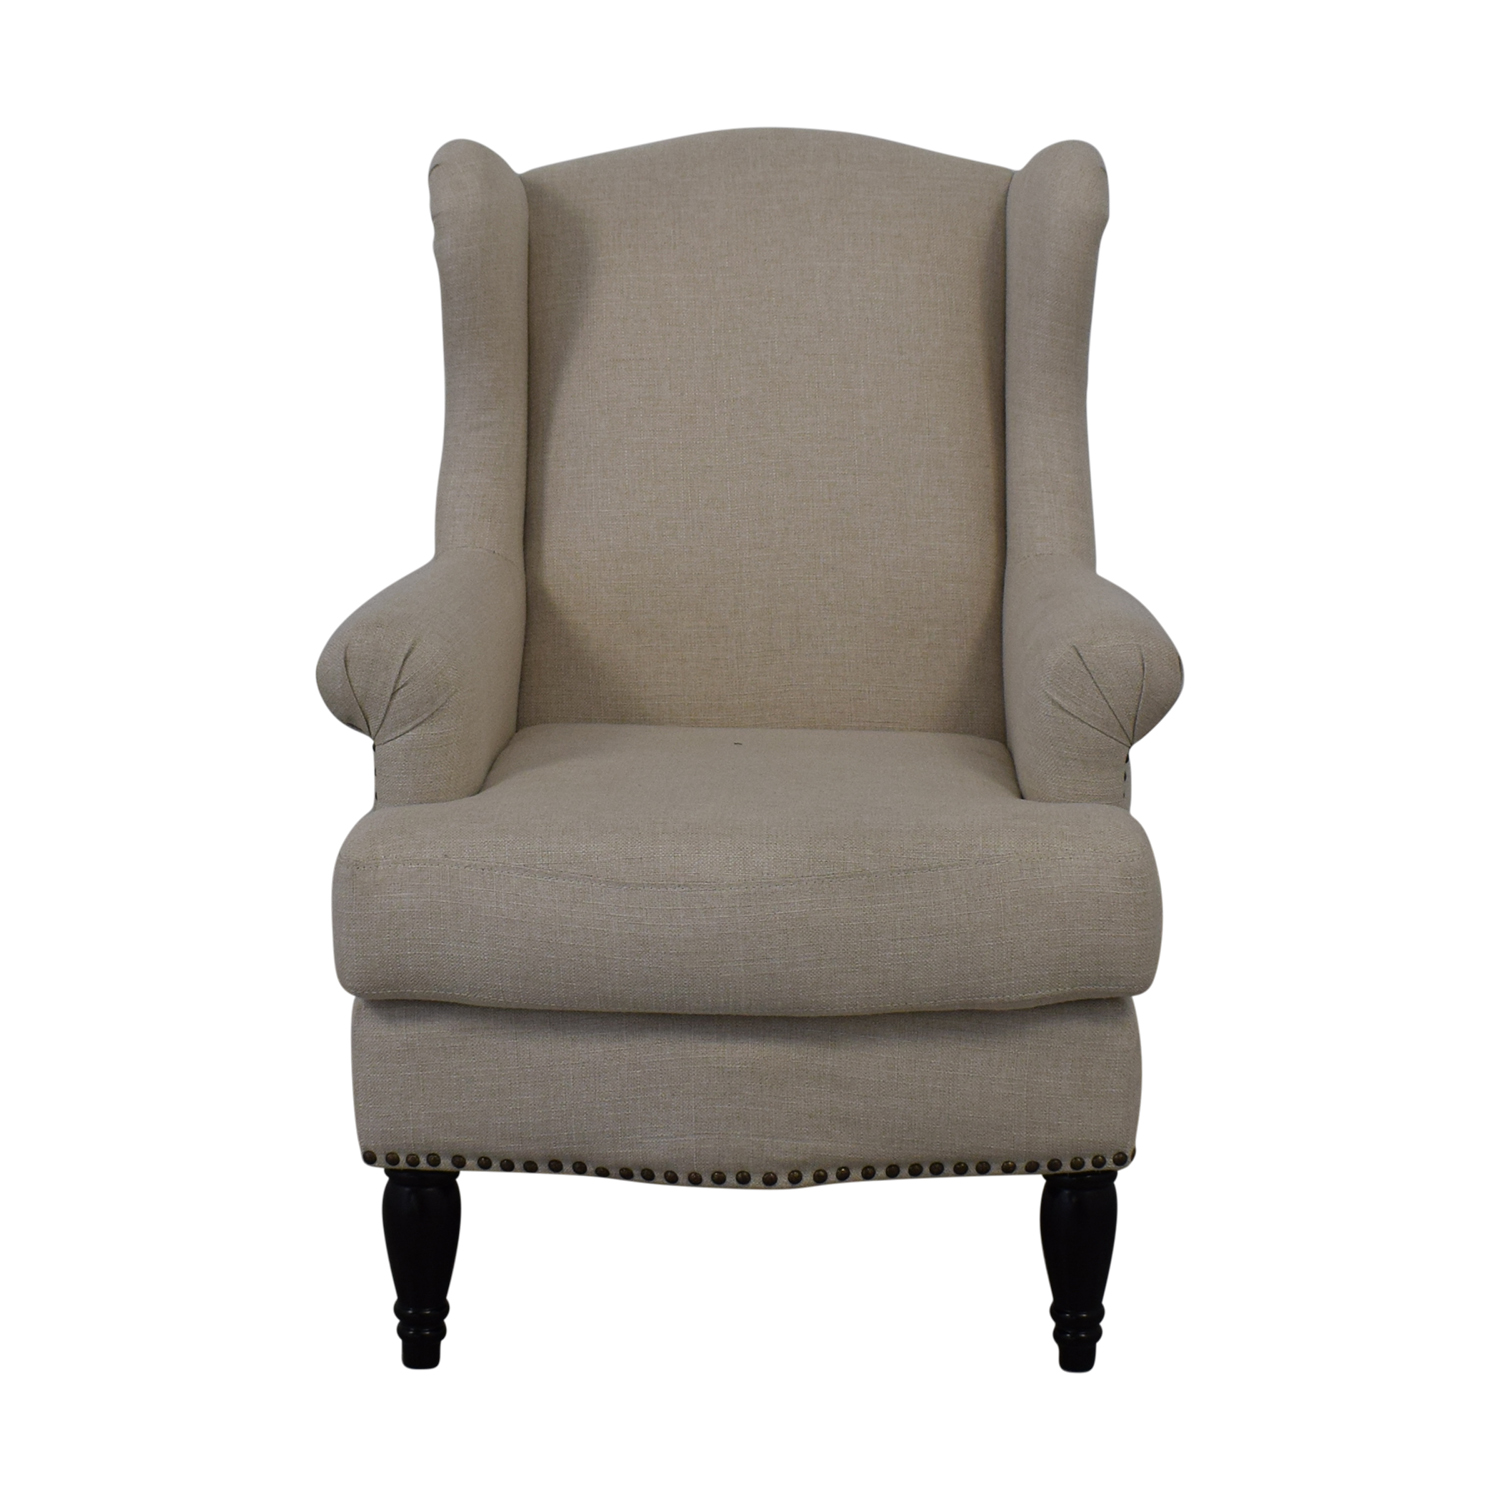 Used Wingback Chairs 76 Off Pottery Barn Pottery Barn Soma Delancey Upholstered Wingback Armchair Chairs